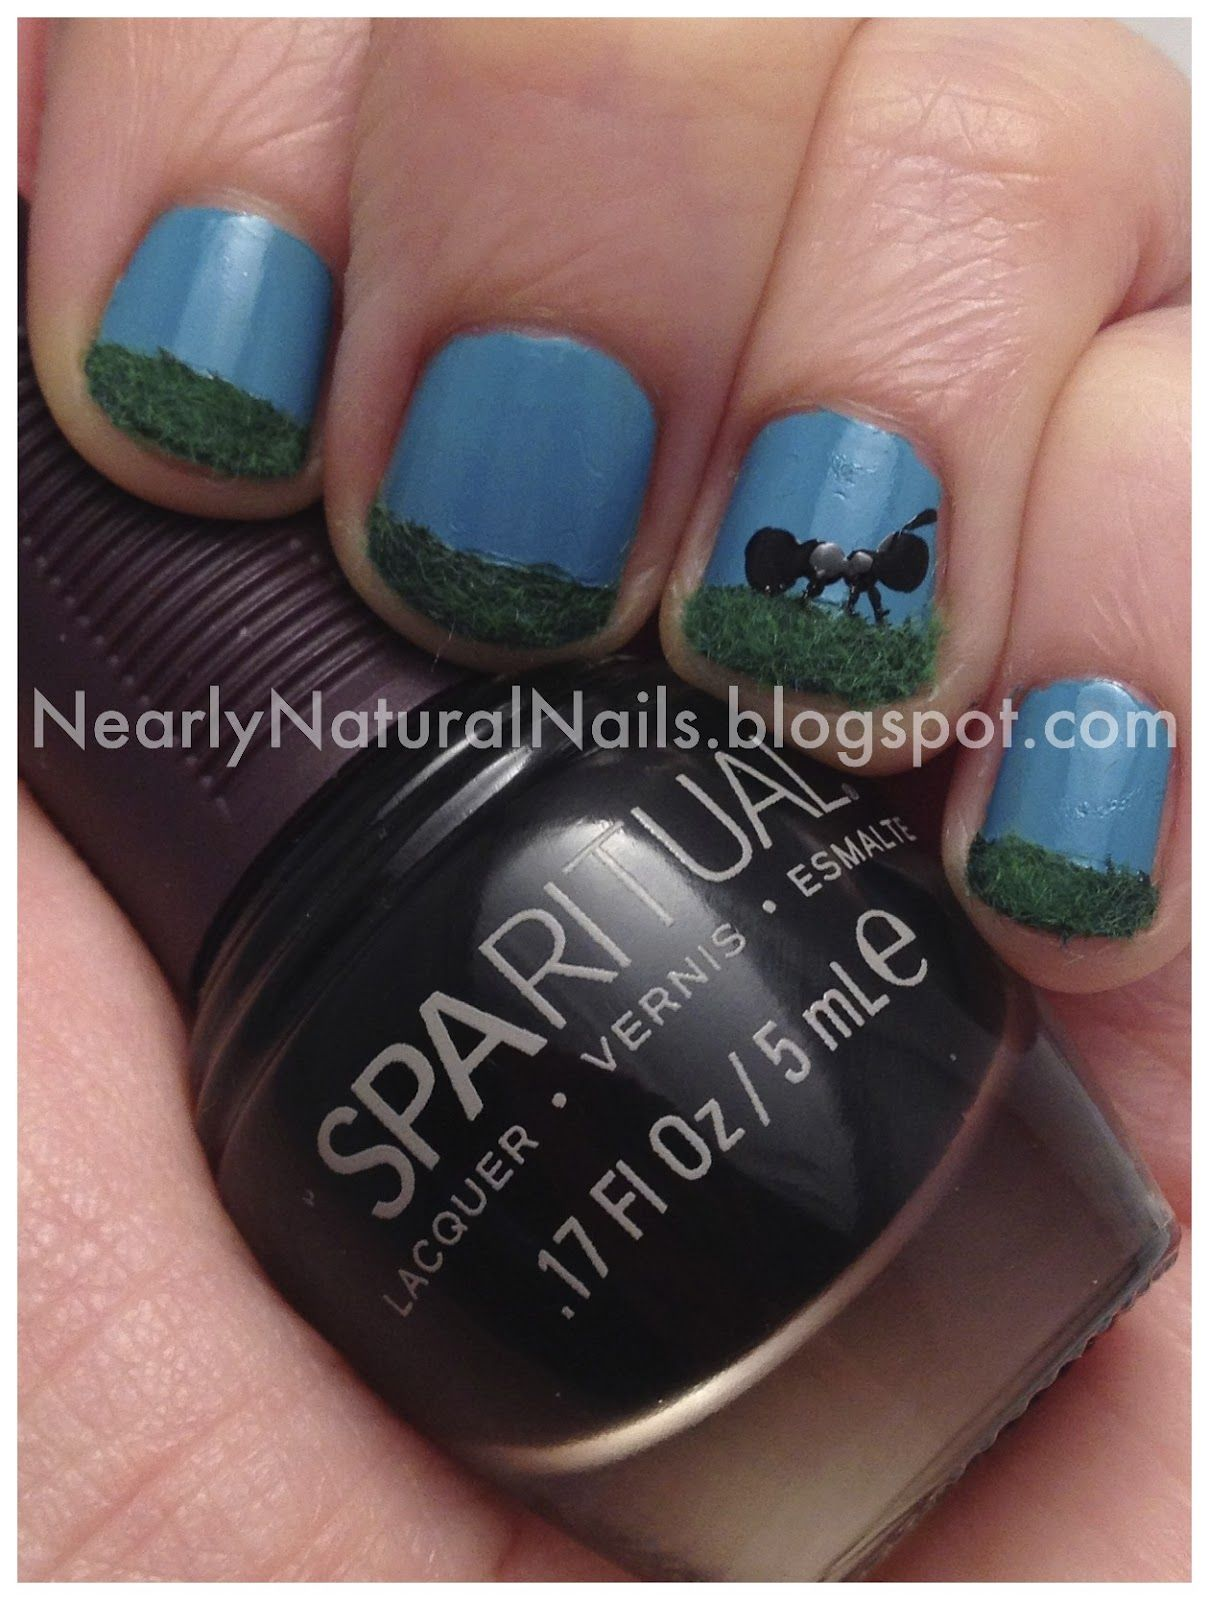 Fuzzy Nails Nail Art Ant And Grass Accent Nail Manicure Scene